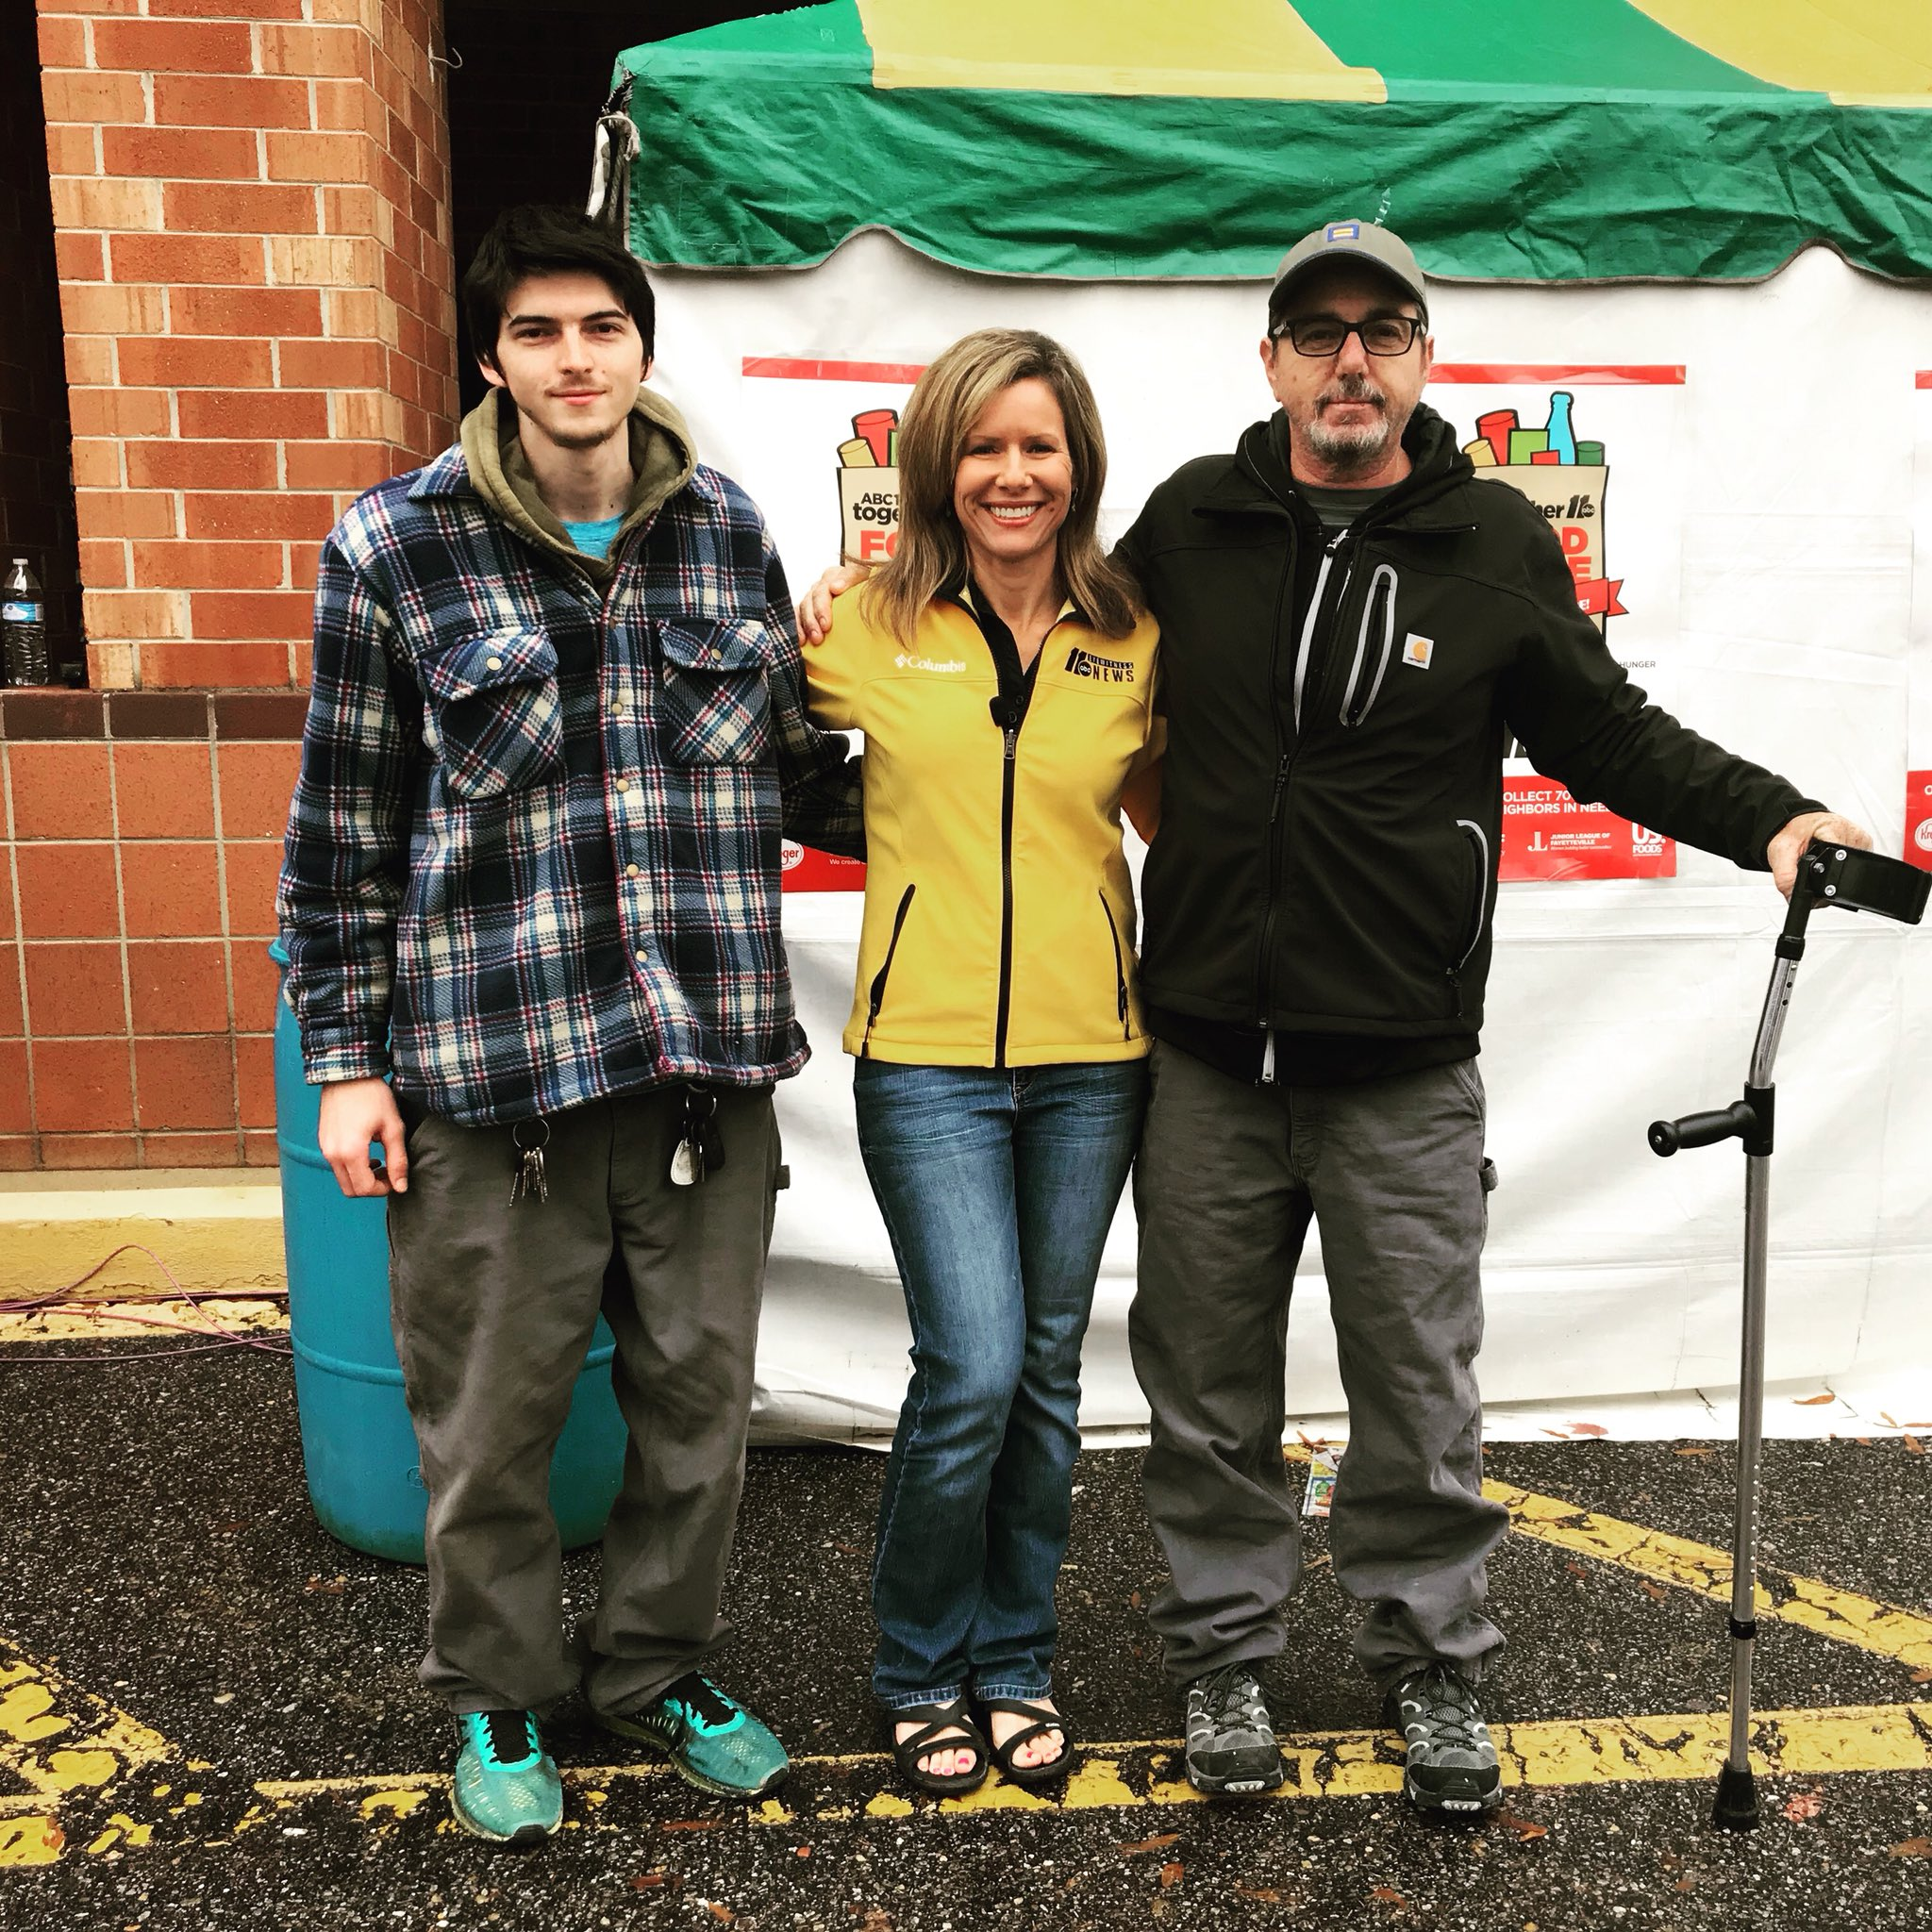 <div class='meta'><div class='origin-logo' data-origin='none'></div><span class='caption-text' data-credit=''>Thank you Bryant and Corbett Tant for the $500 donation to the ABC11 Together Food Drive! The father/son duo donate every year!</span></div>